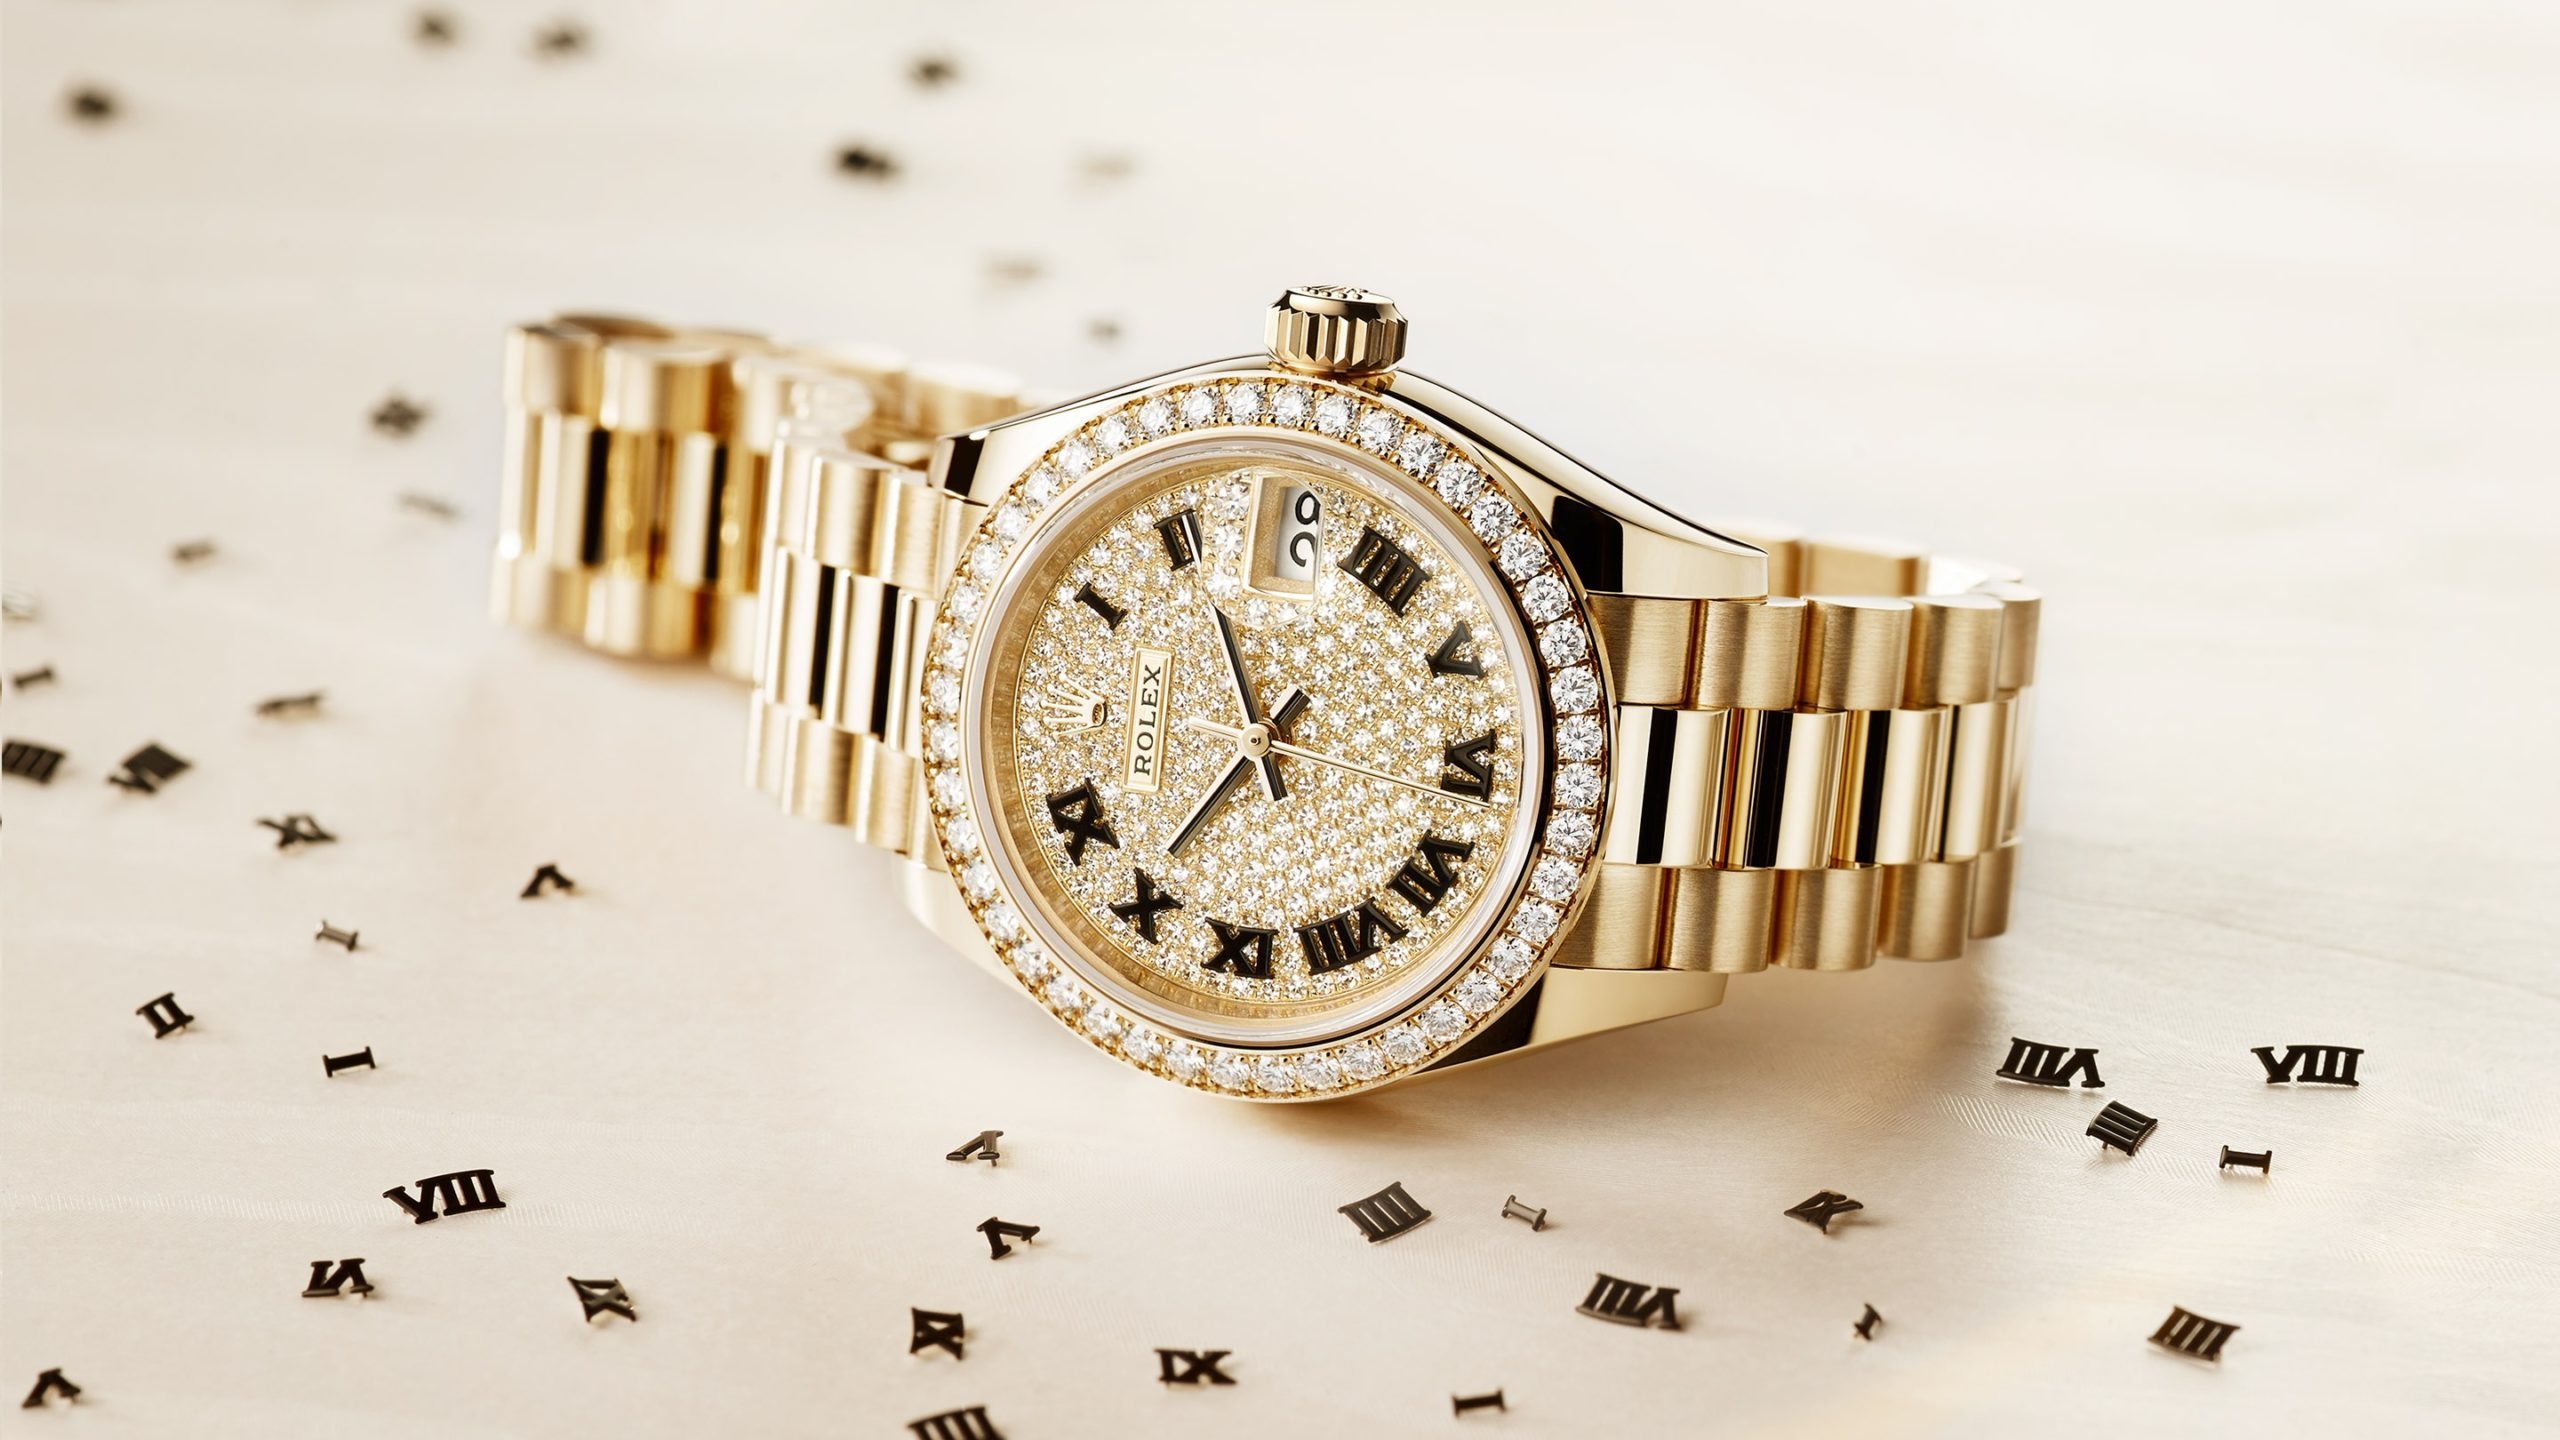 Rolex Oyster Perpetual Lady-Datejust in 18 ct yellow gold with diamonds - Kee Hing Hung